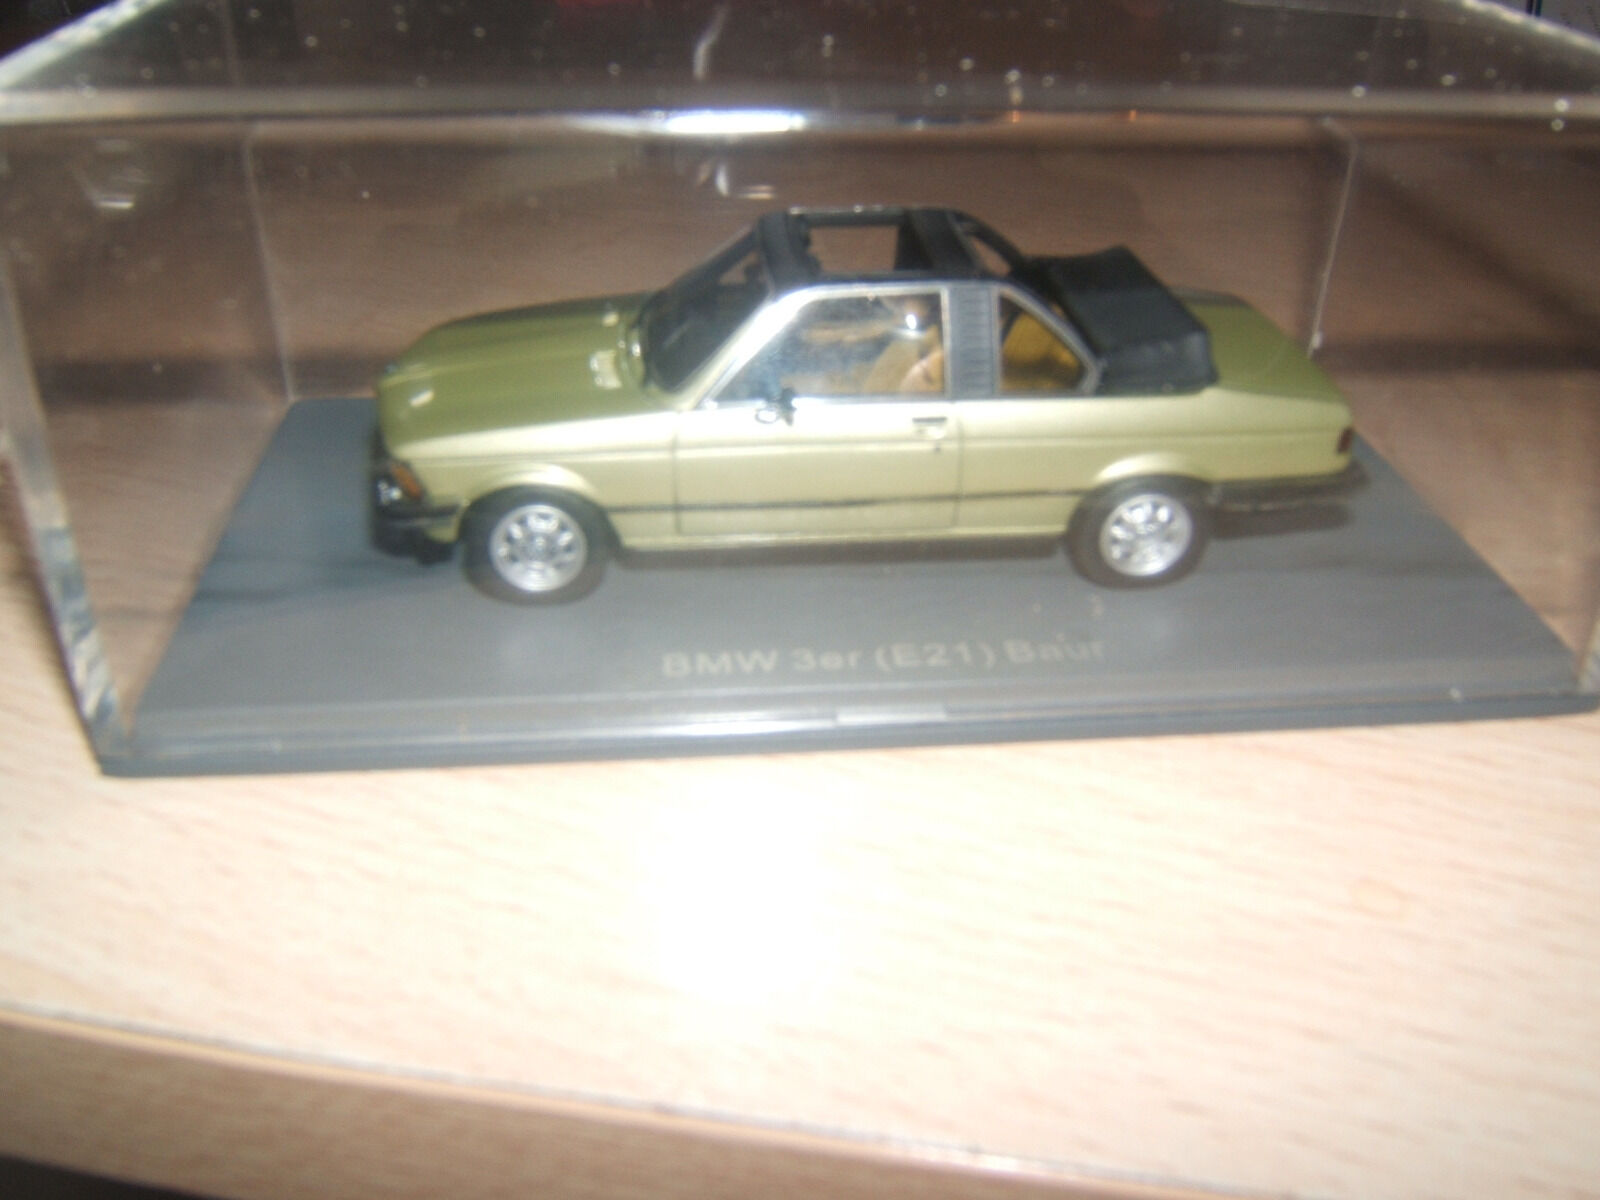 BMW 3er (E21) Baur SCALE MODEL 1 43